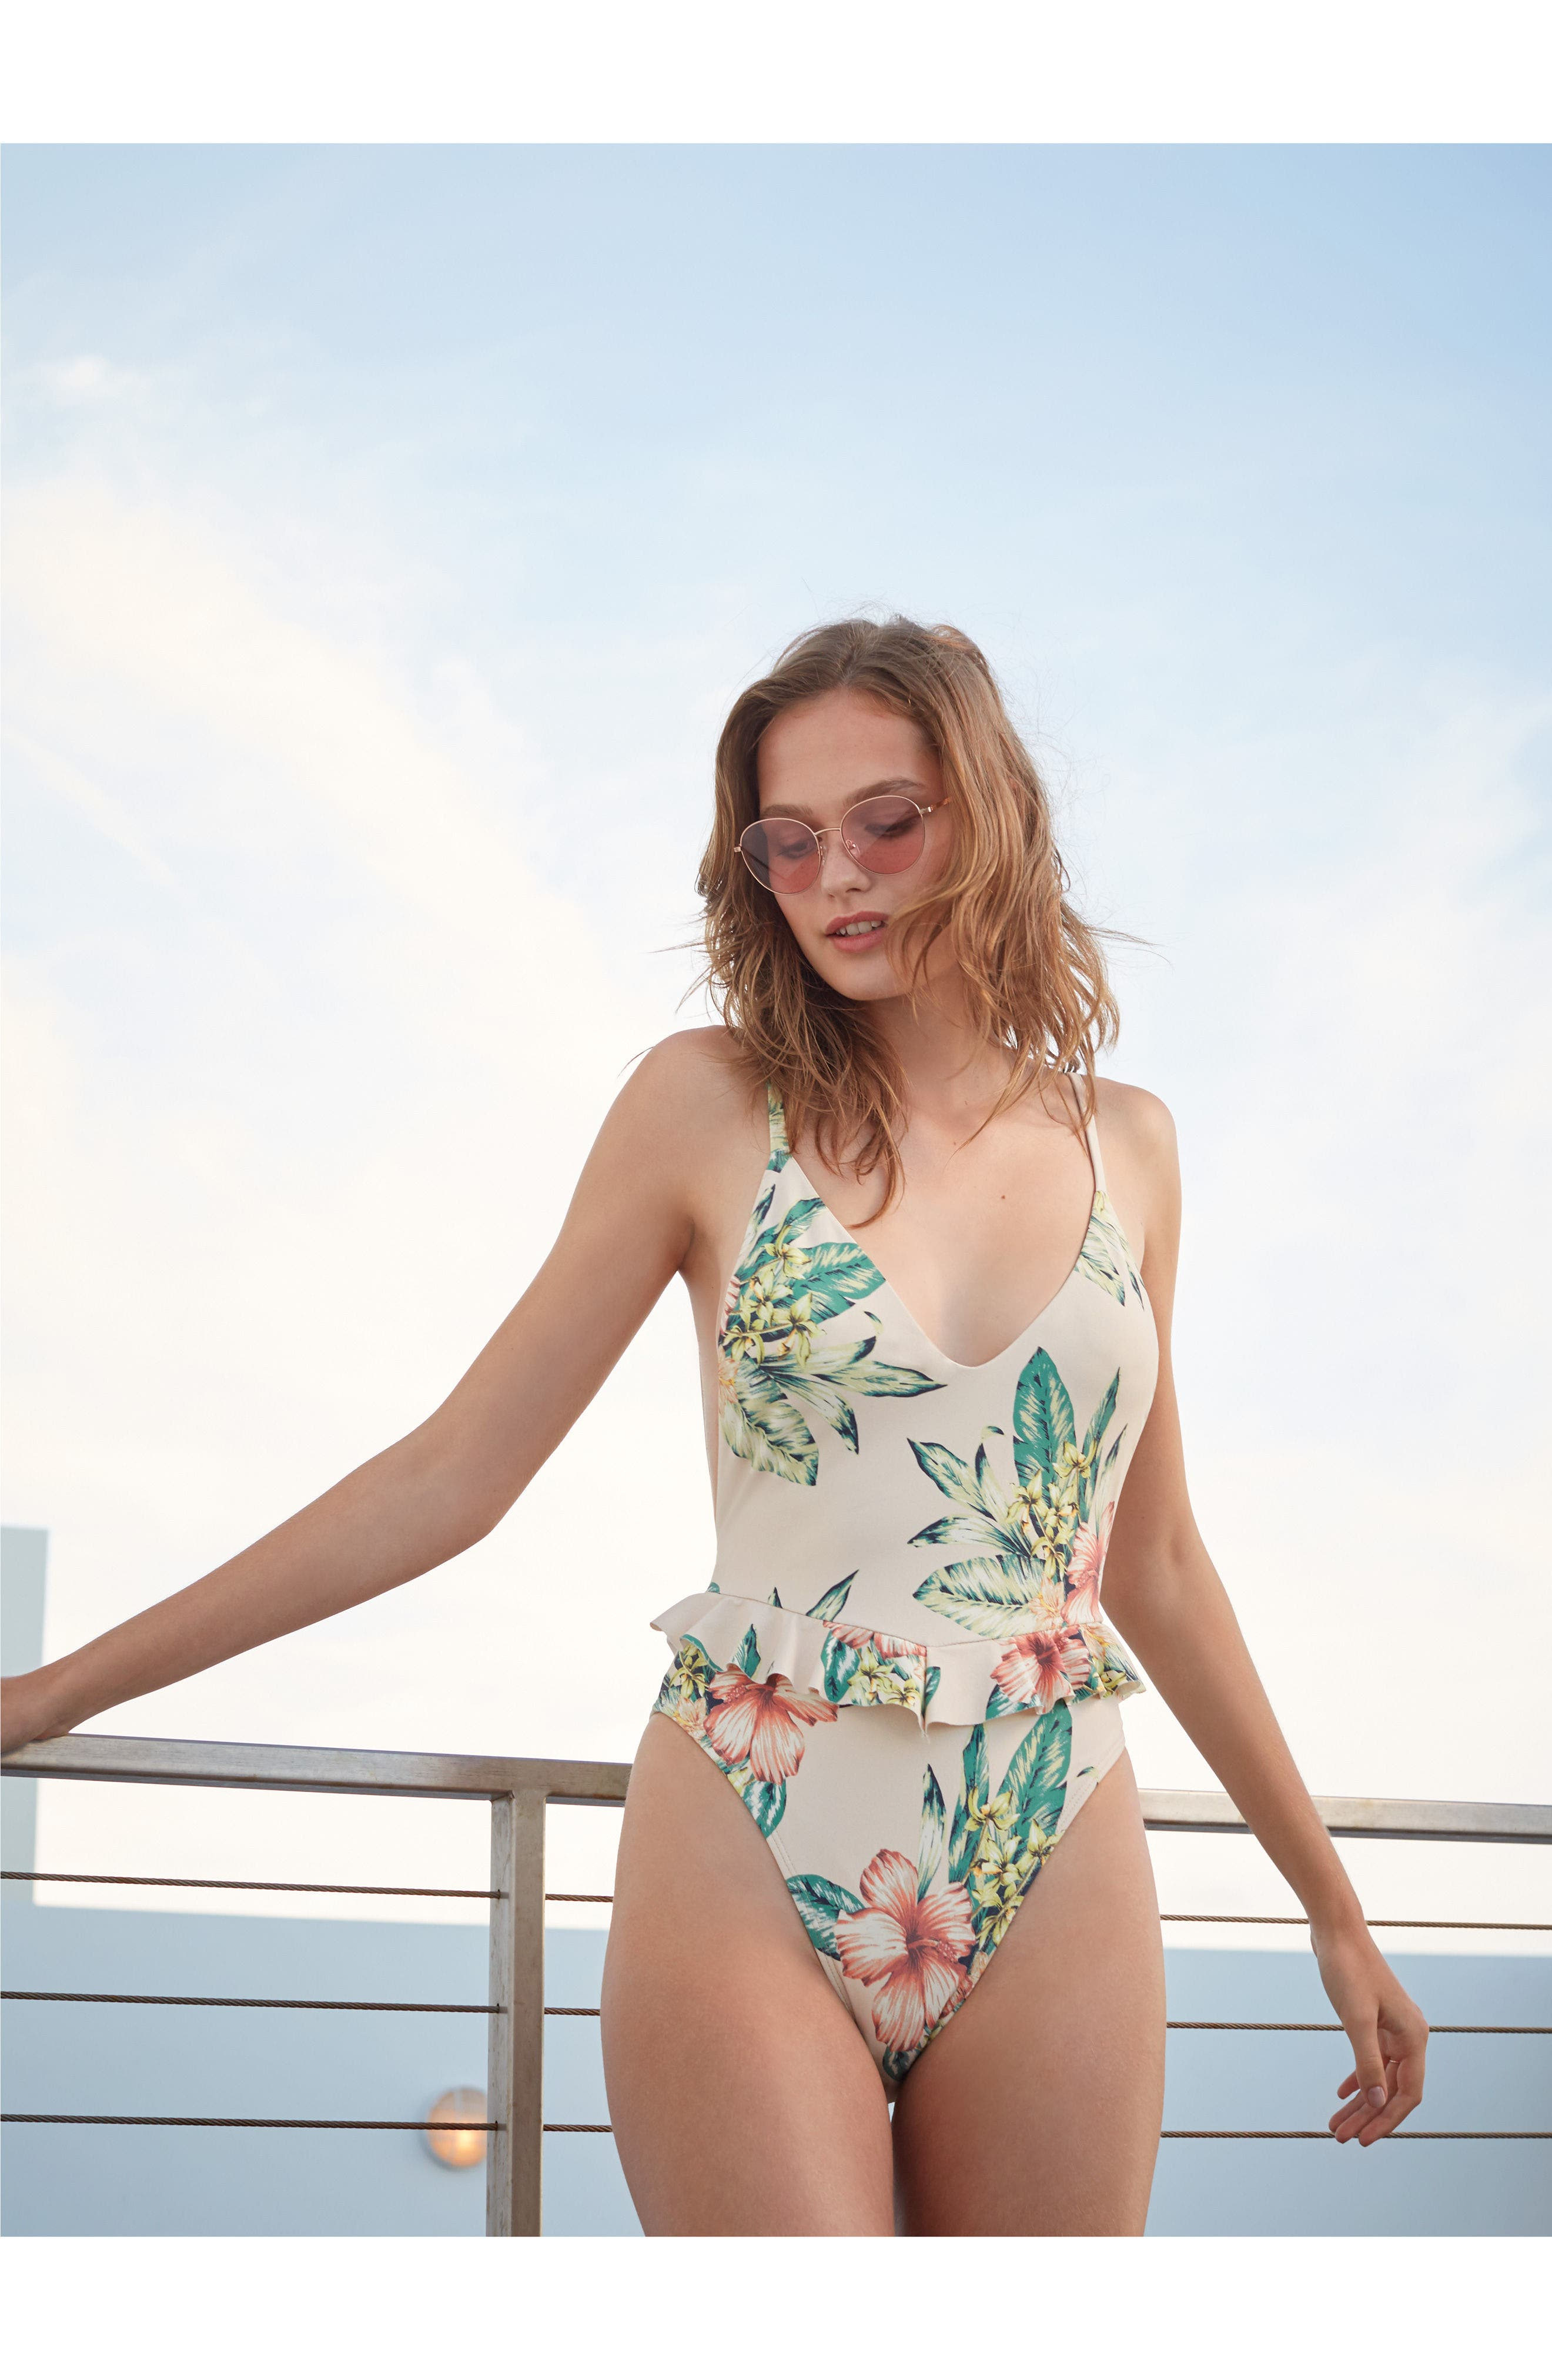 Cynthia One-Piece Swimsuit,                             Alternate thumbnail 8, color,                             100